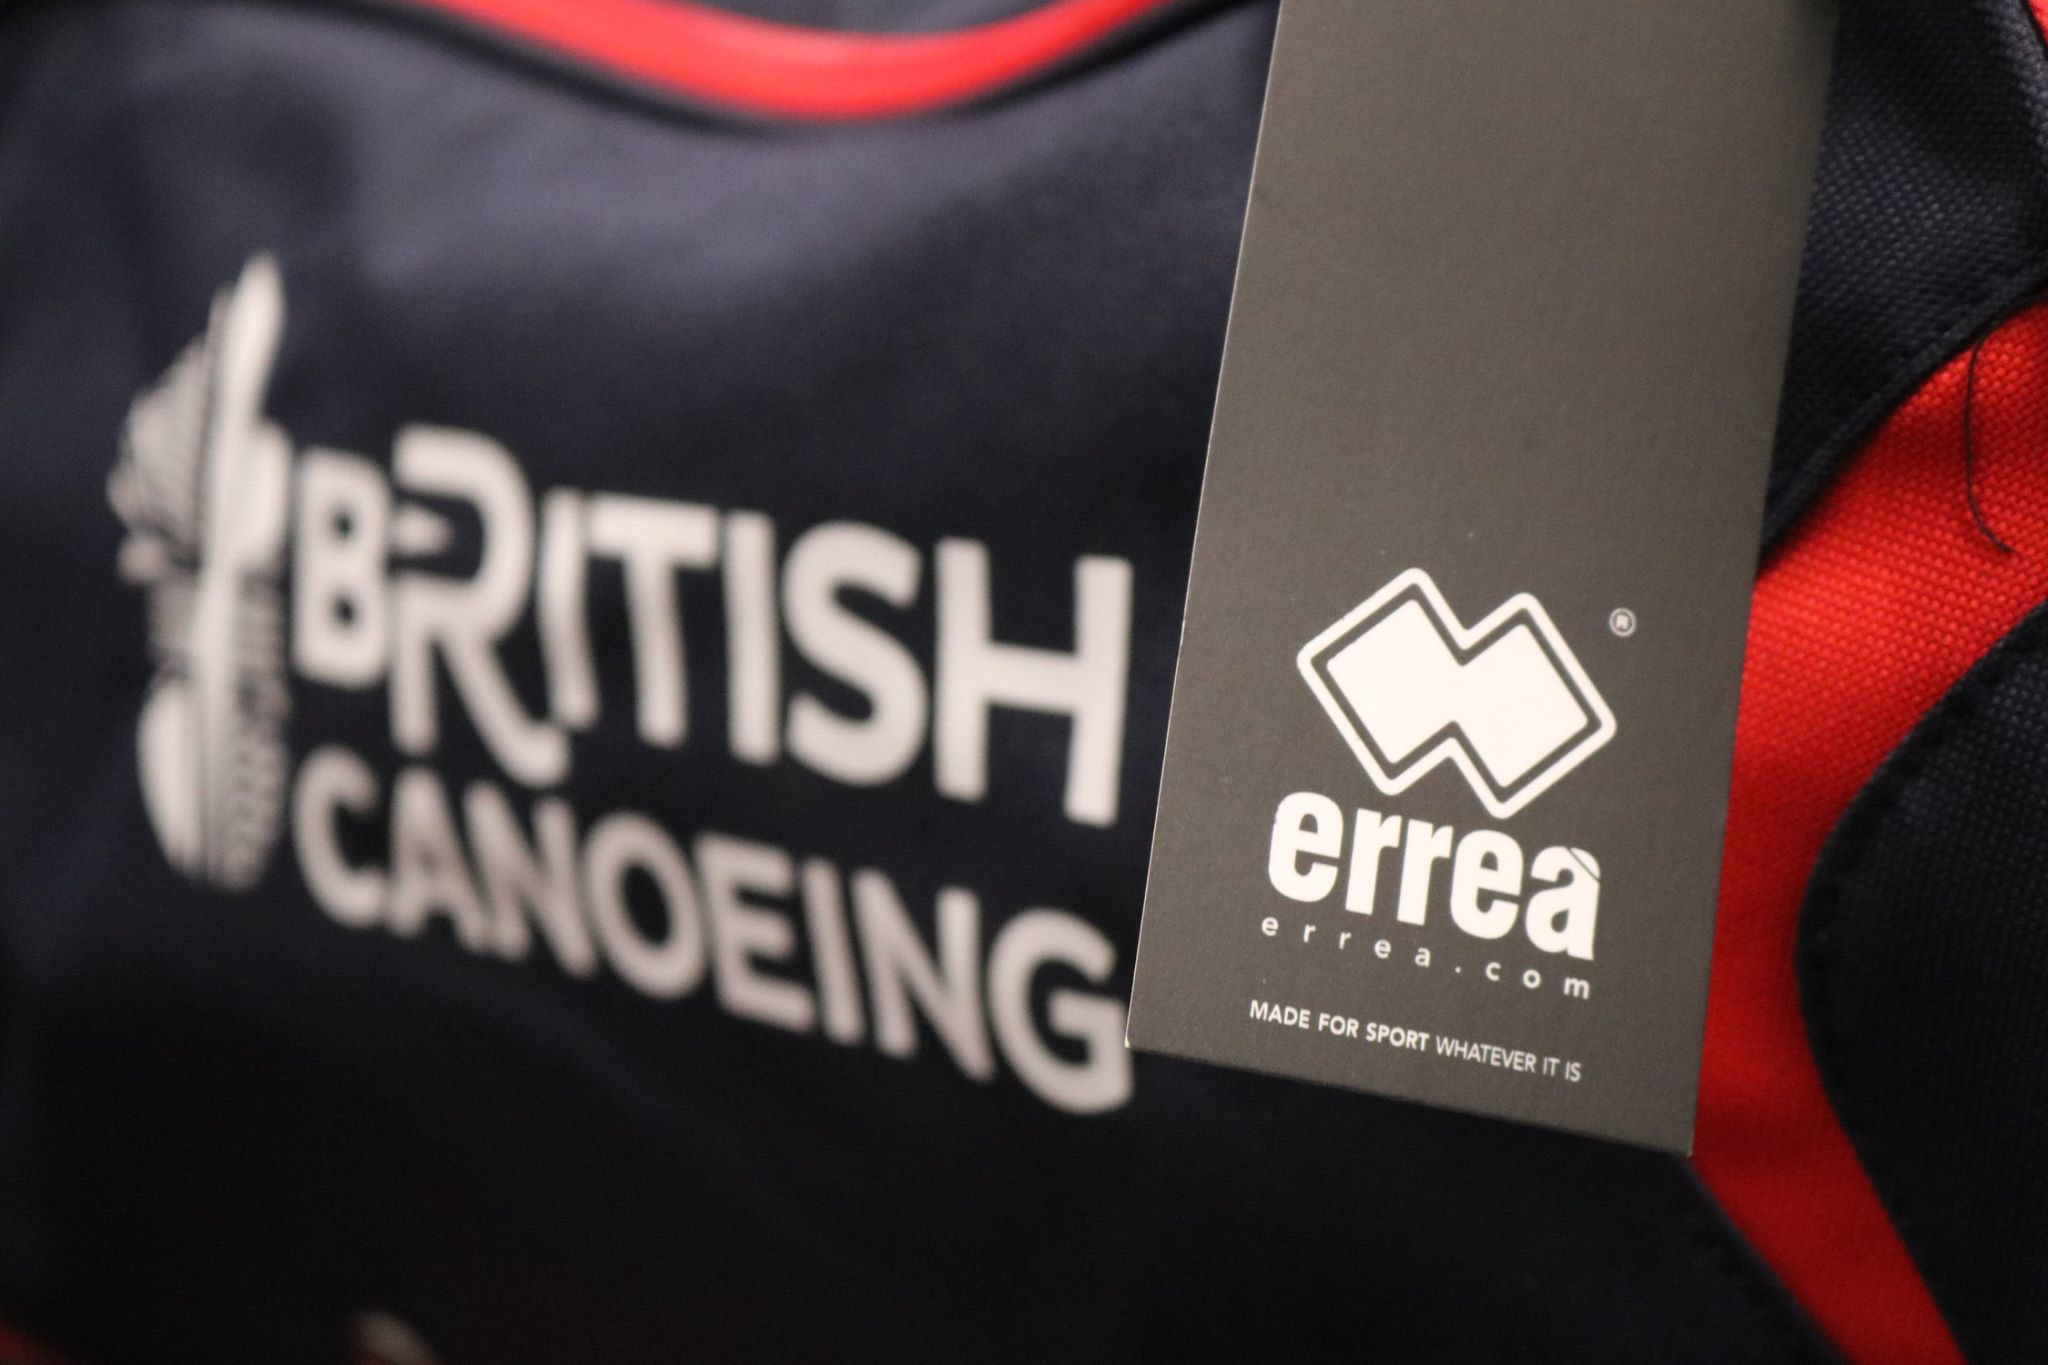 An agreement is signed with British Canoeing, the governing body for paddlesports in the UK